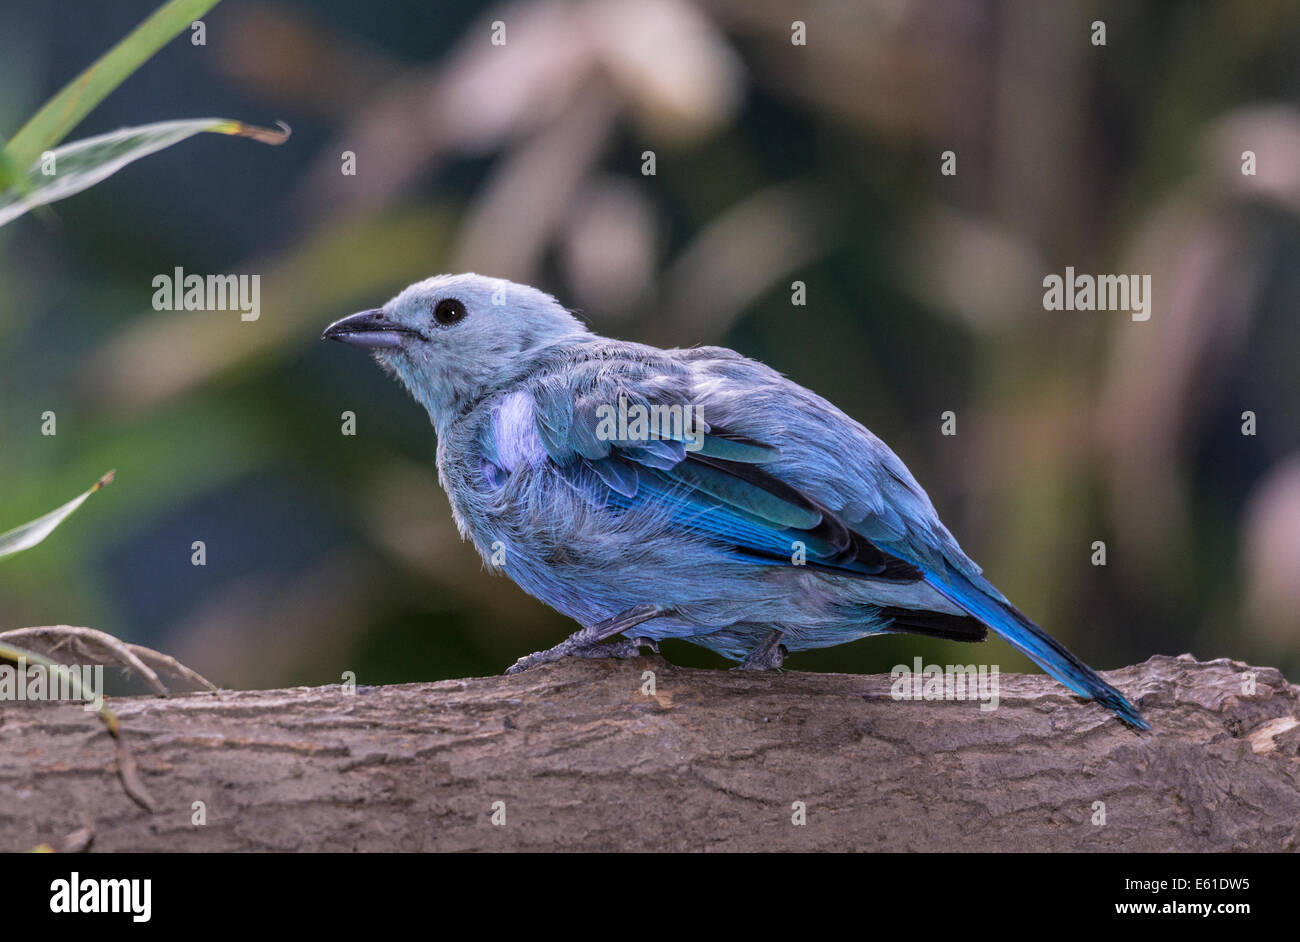 Blue-gray Tanager of South America - Stock Image